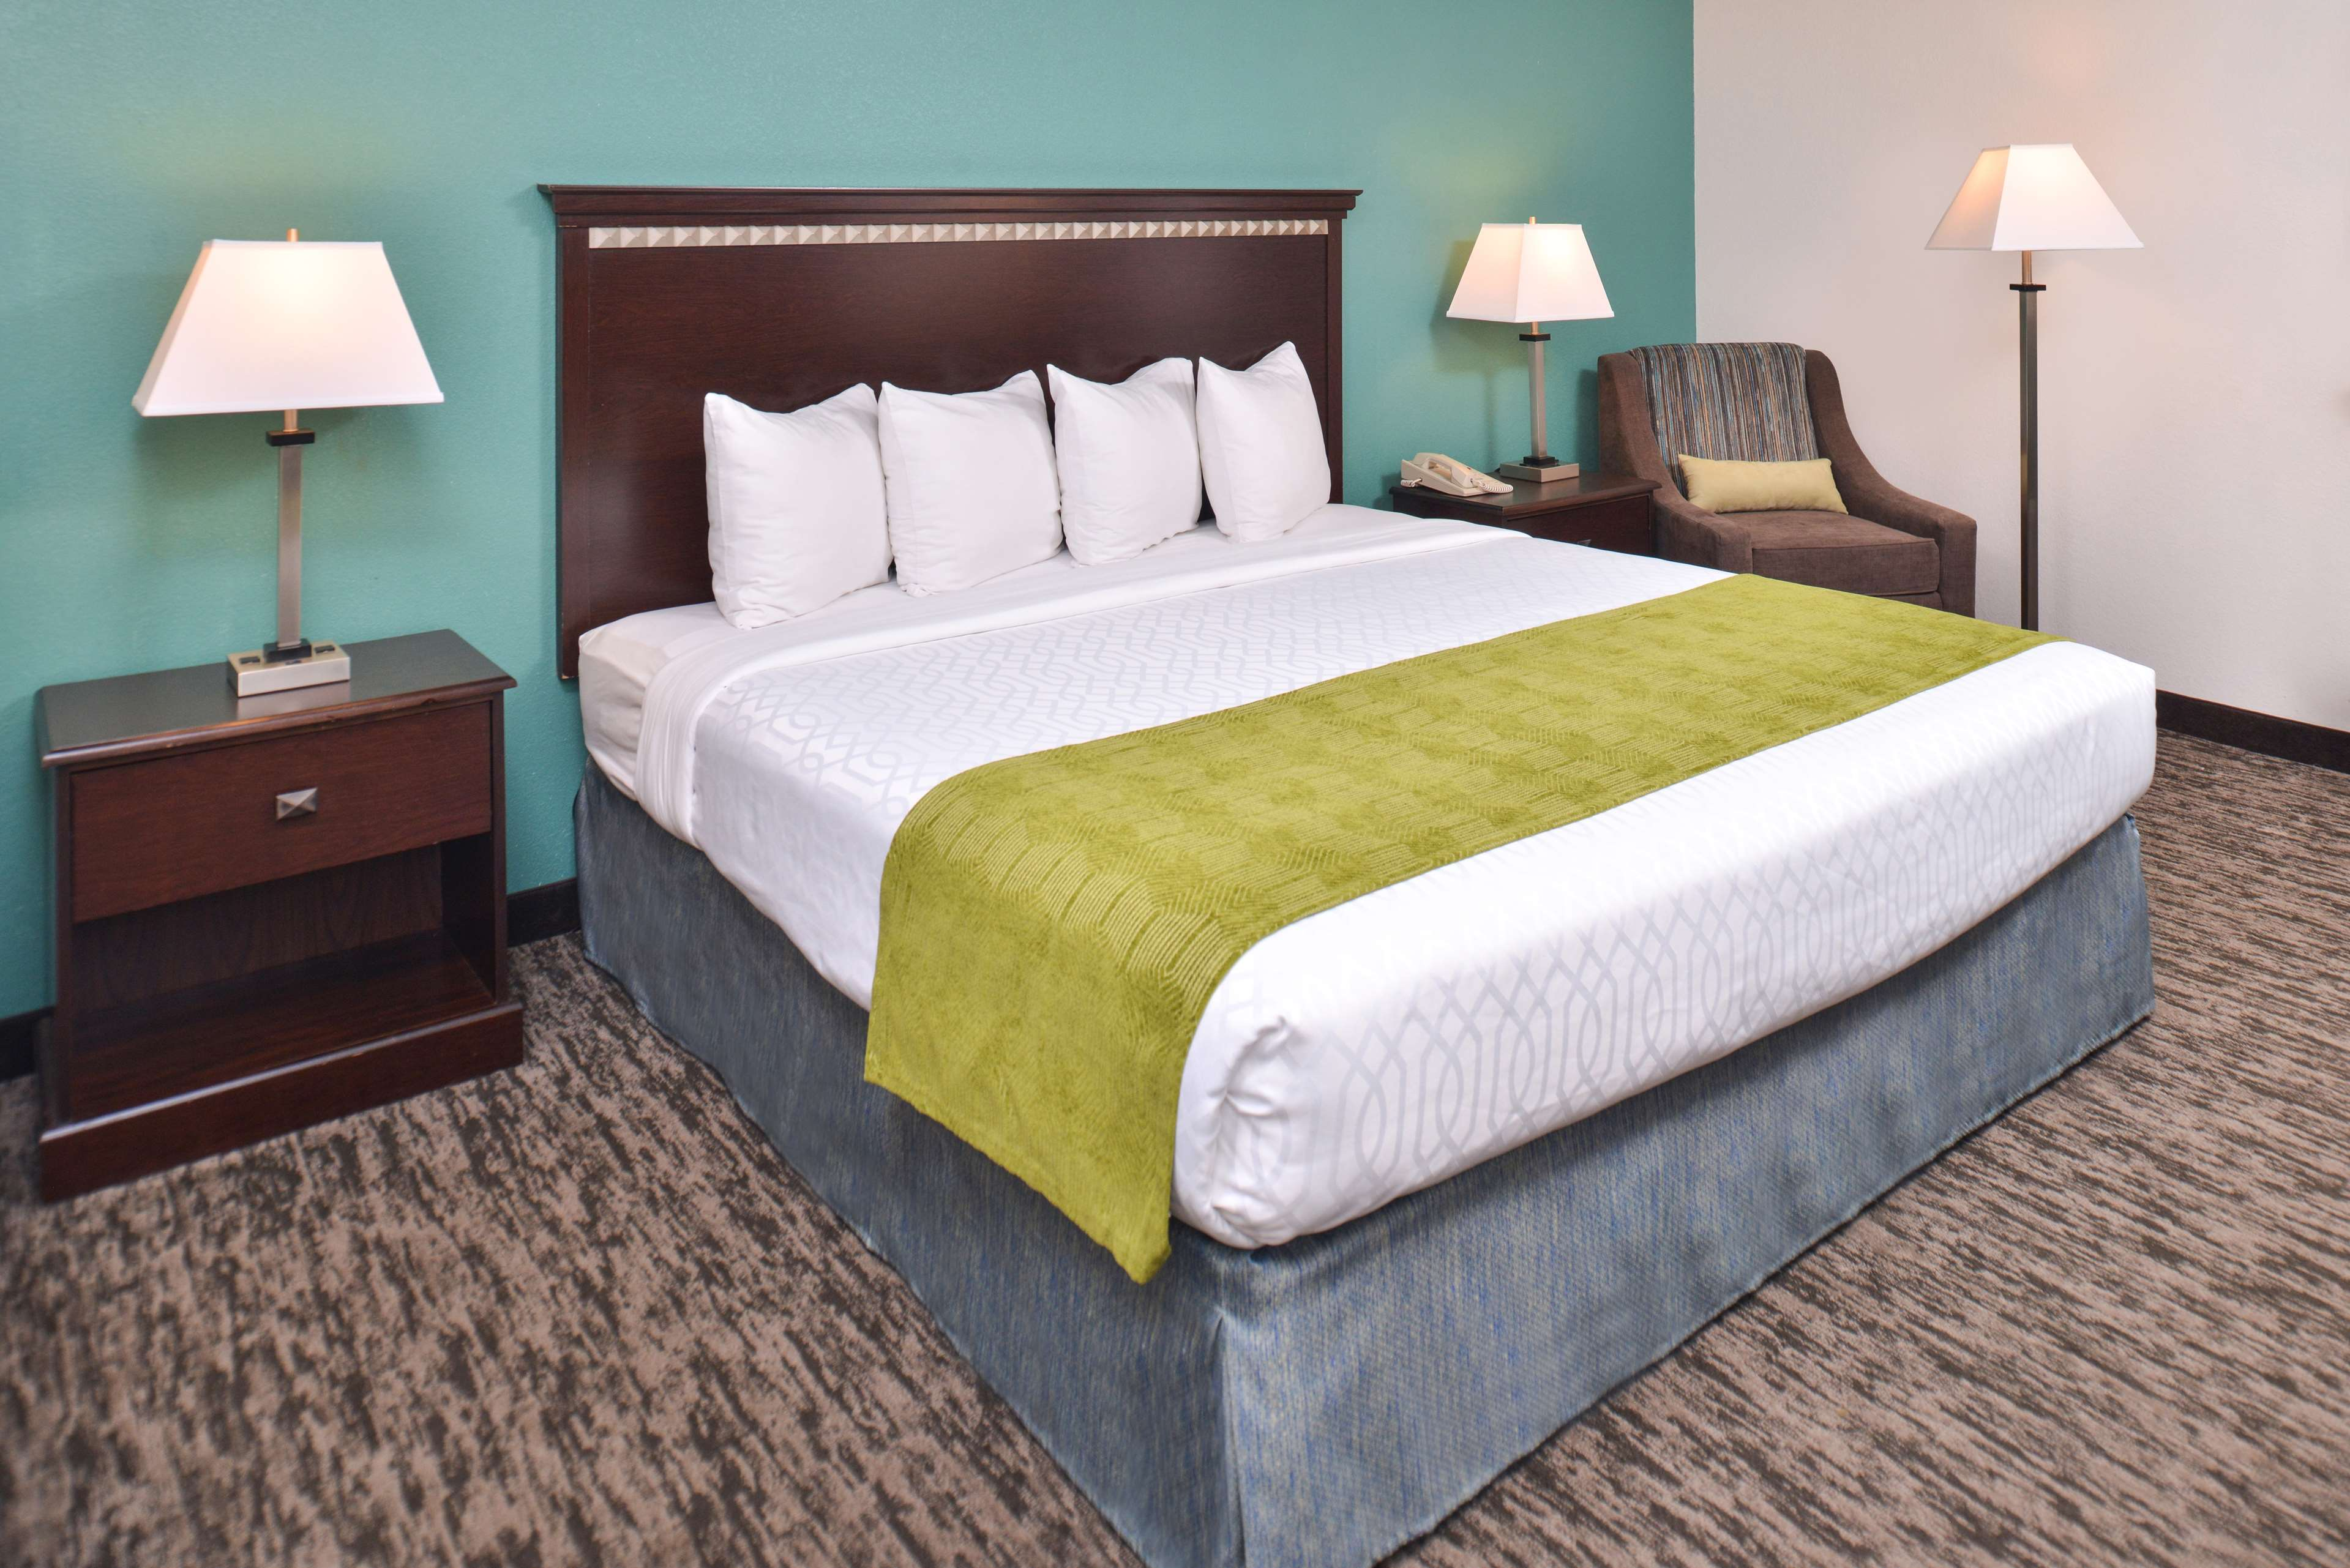 Best Western Plus Chicagoland - Countryside image 31